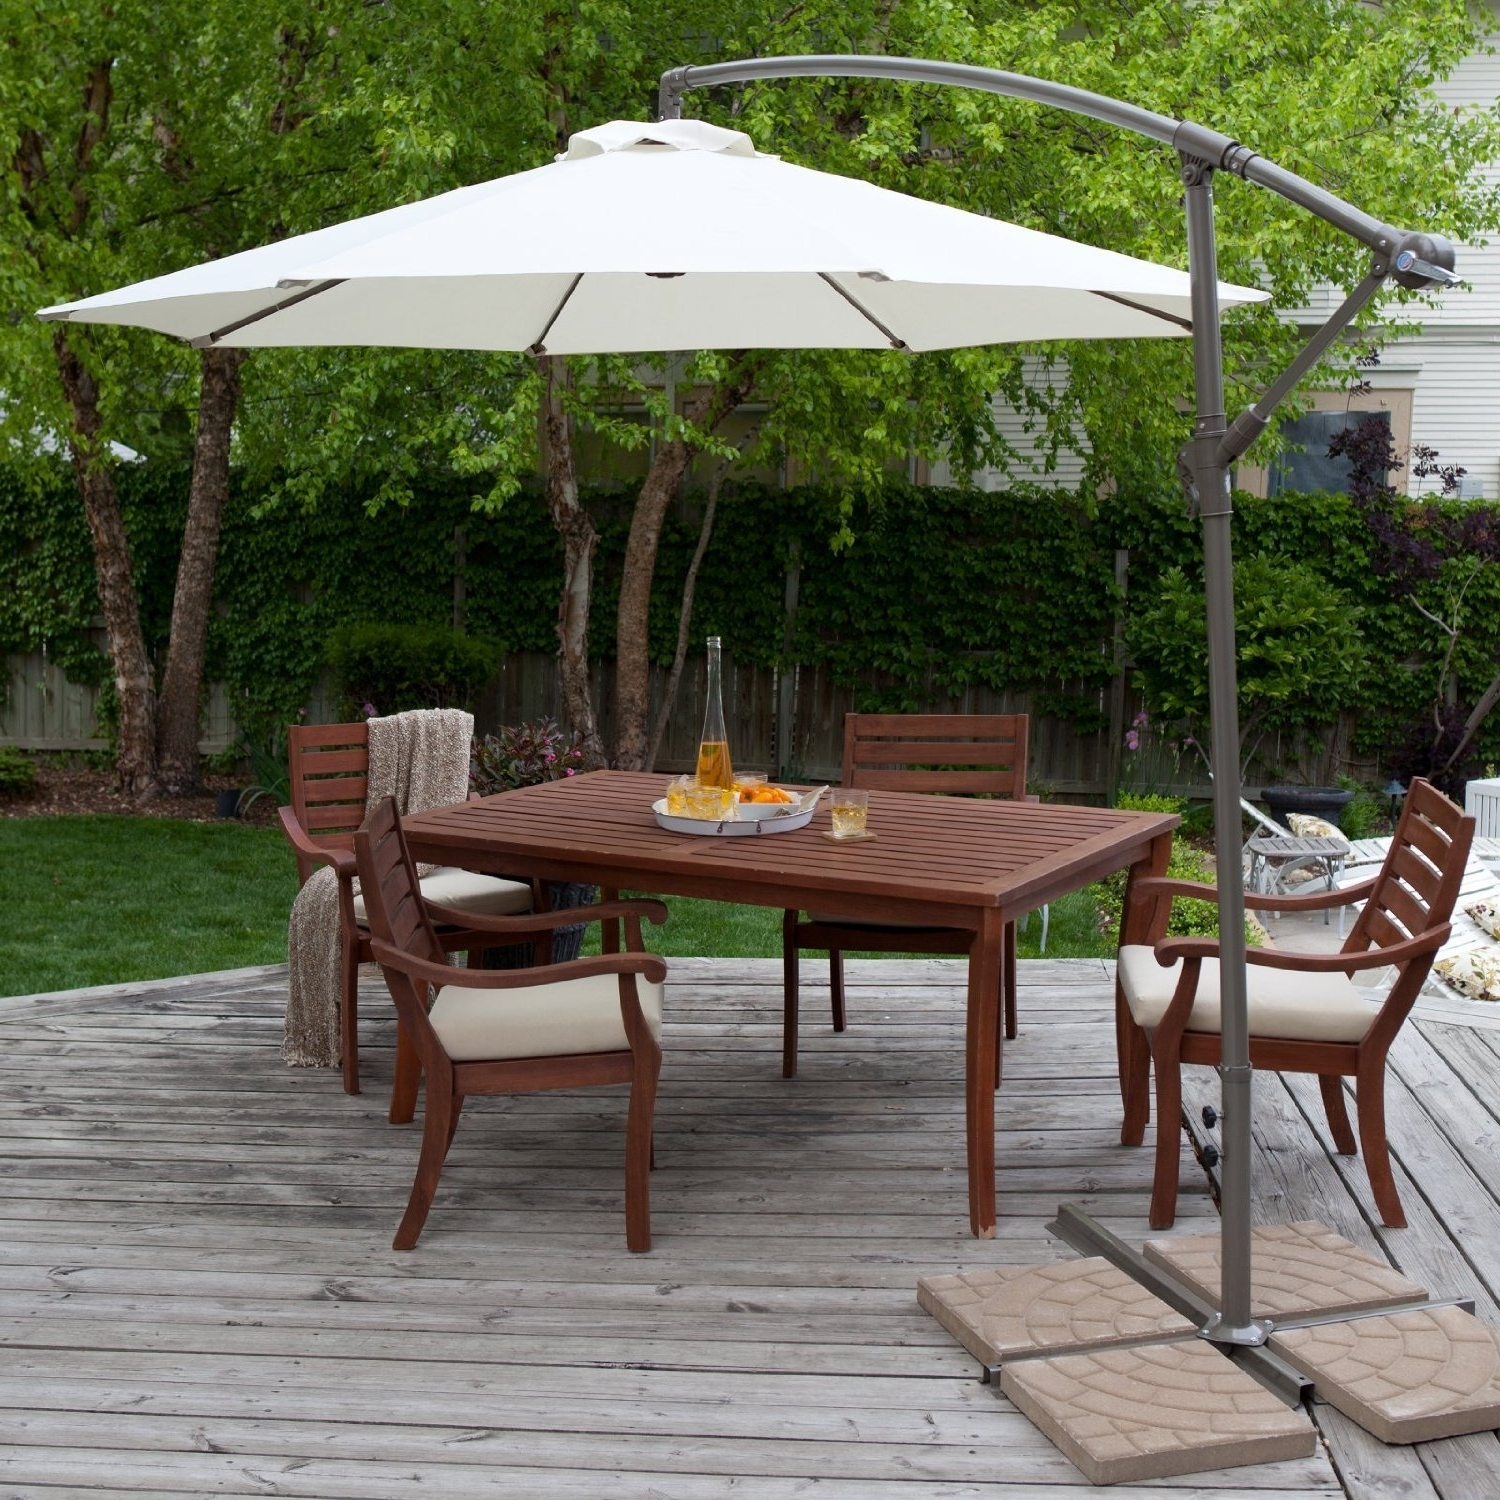 Patio Sets With Umbrellas For Well Known Interior : Patio Table Chairs Umbrella Set New Furniture Sets With (View 12 of 20)